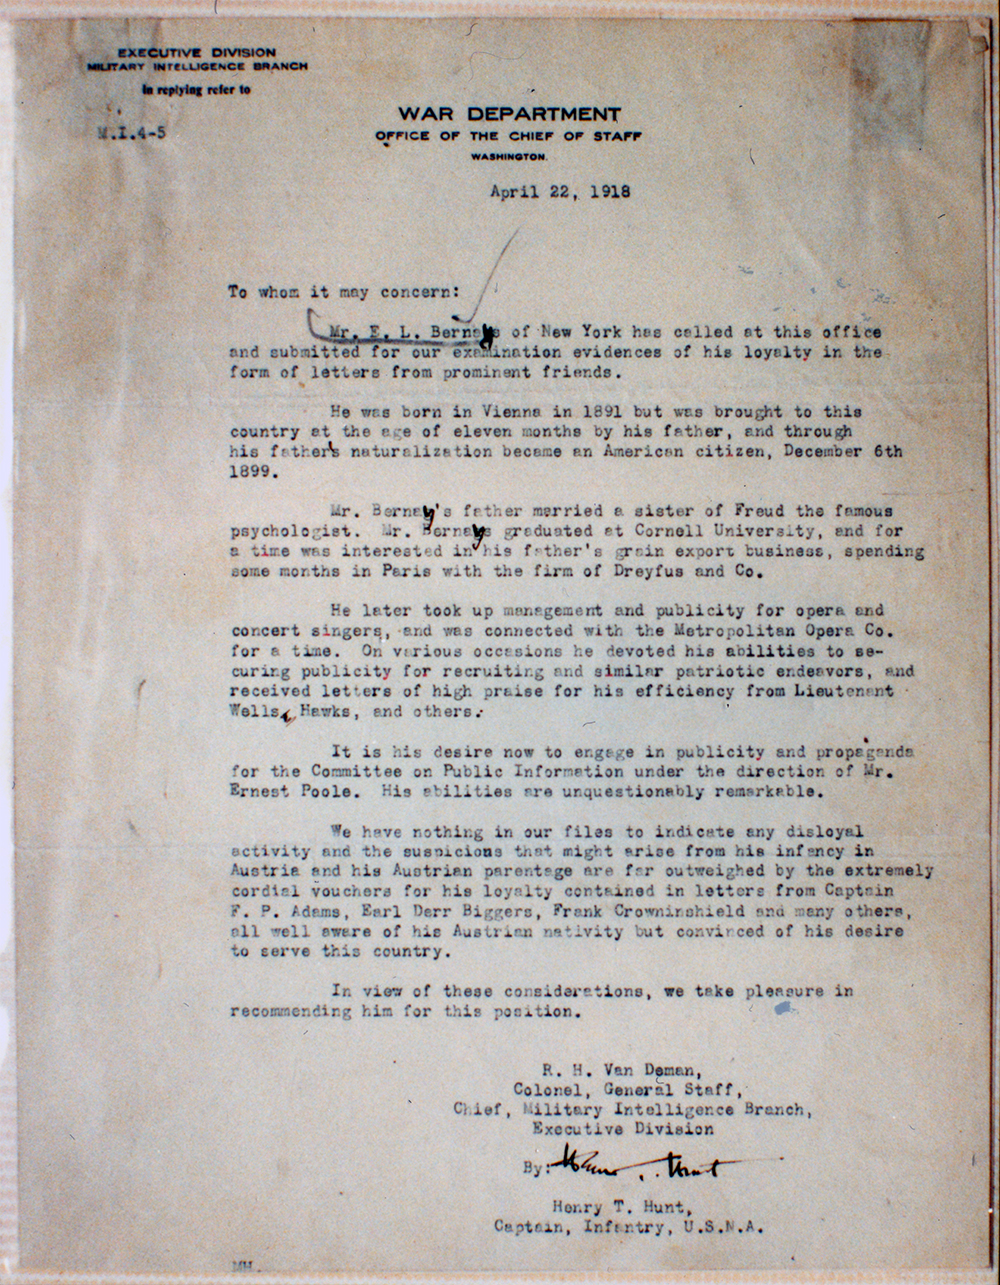 The Military Branch of the War Department clears Bernays to work for the Committee on Public Information. This letter is, in a way, an abbreviated bio of Bernays, referring both to his relationship to Sigmund Freud and his early years in the United States.